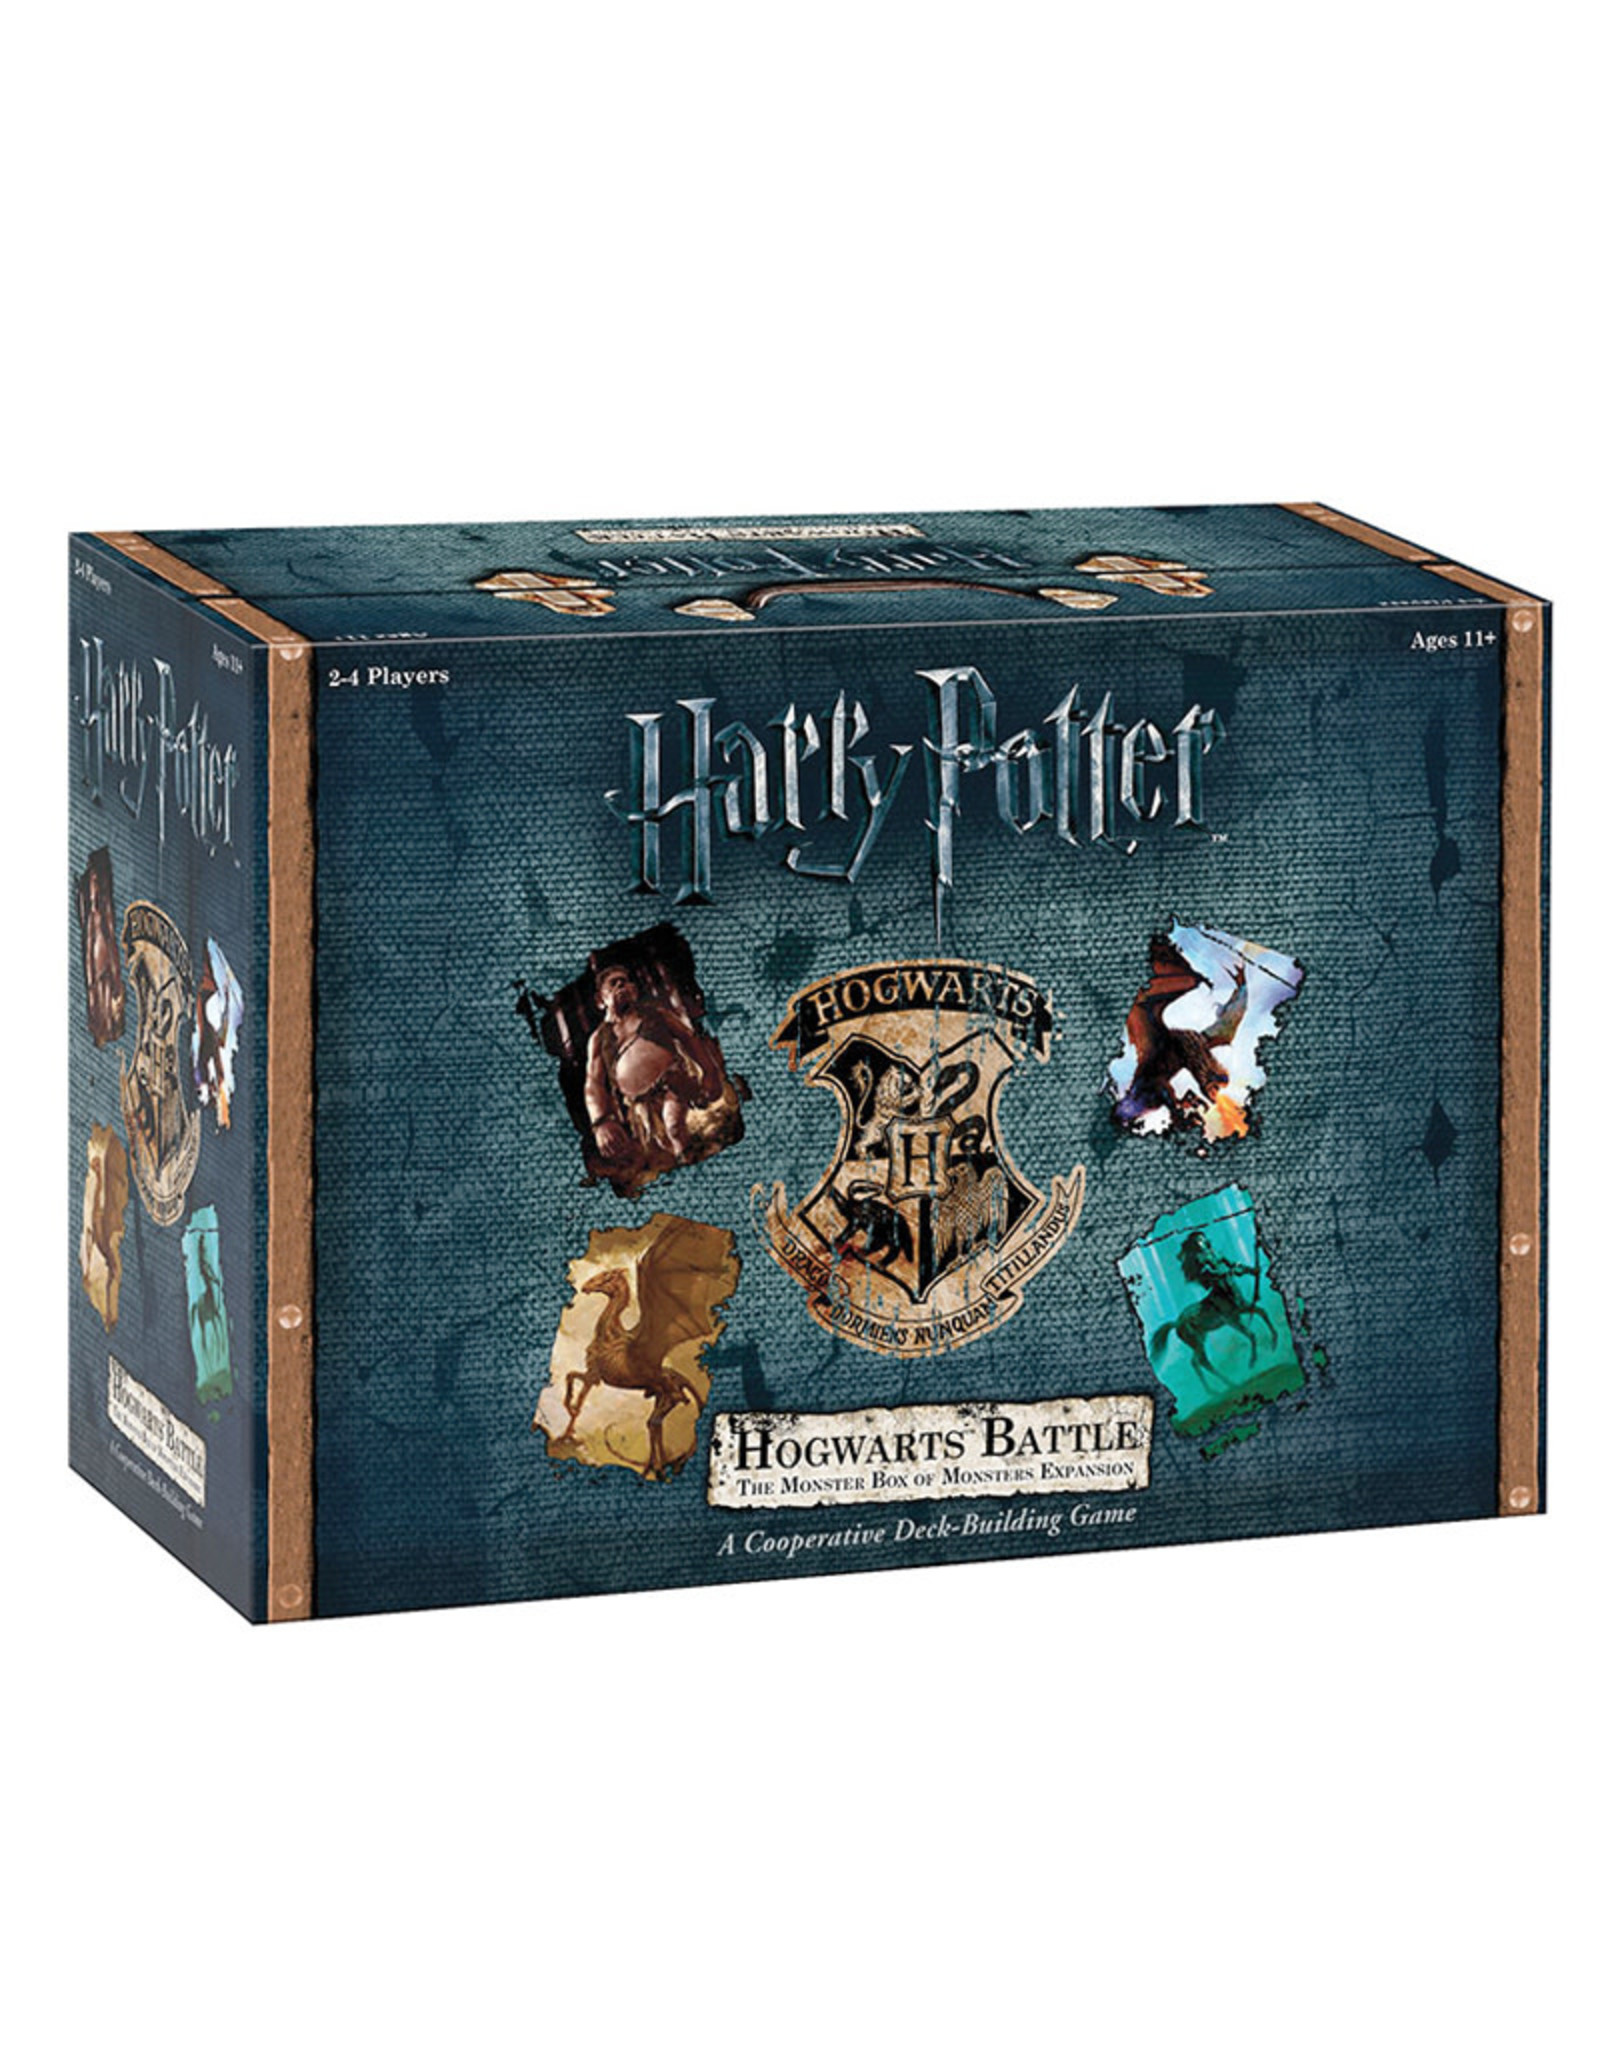 USAopoly Harry Potter Hogwarts Battles The Monster Box of Monsters Expansion